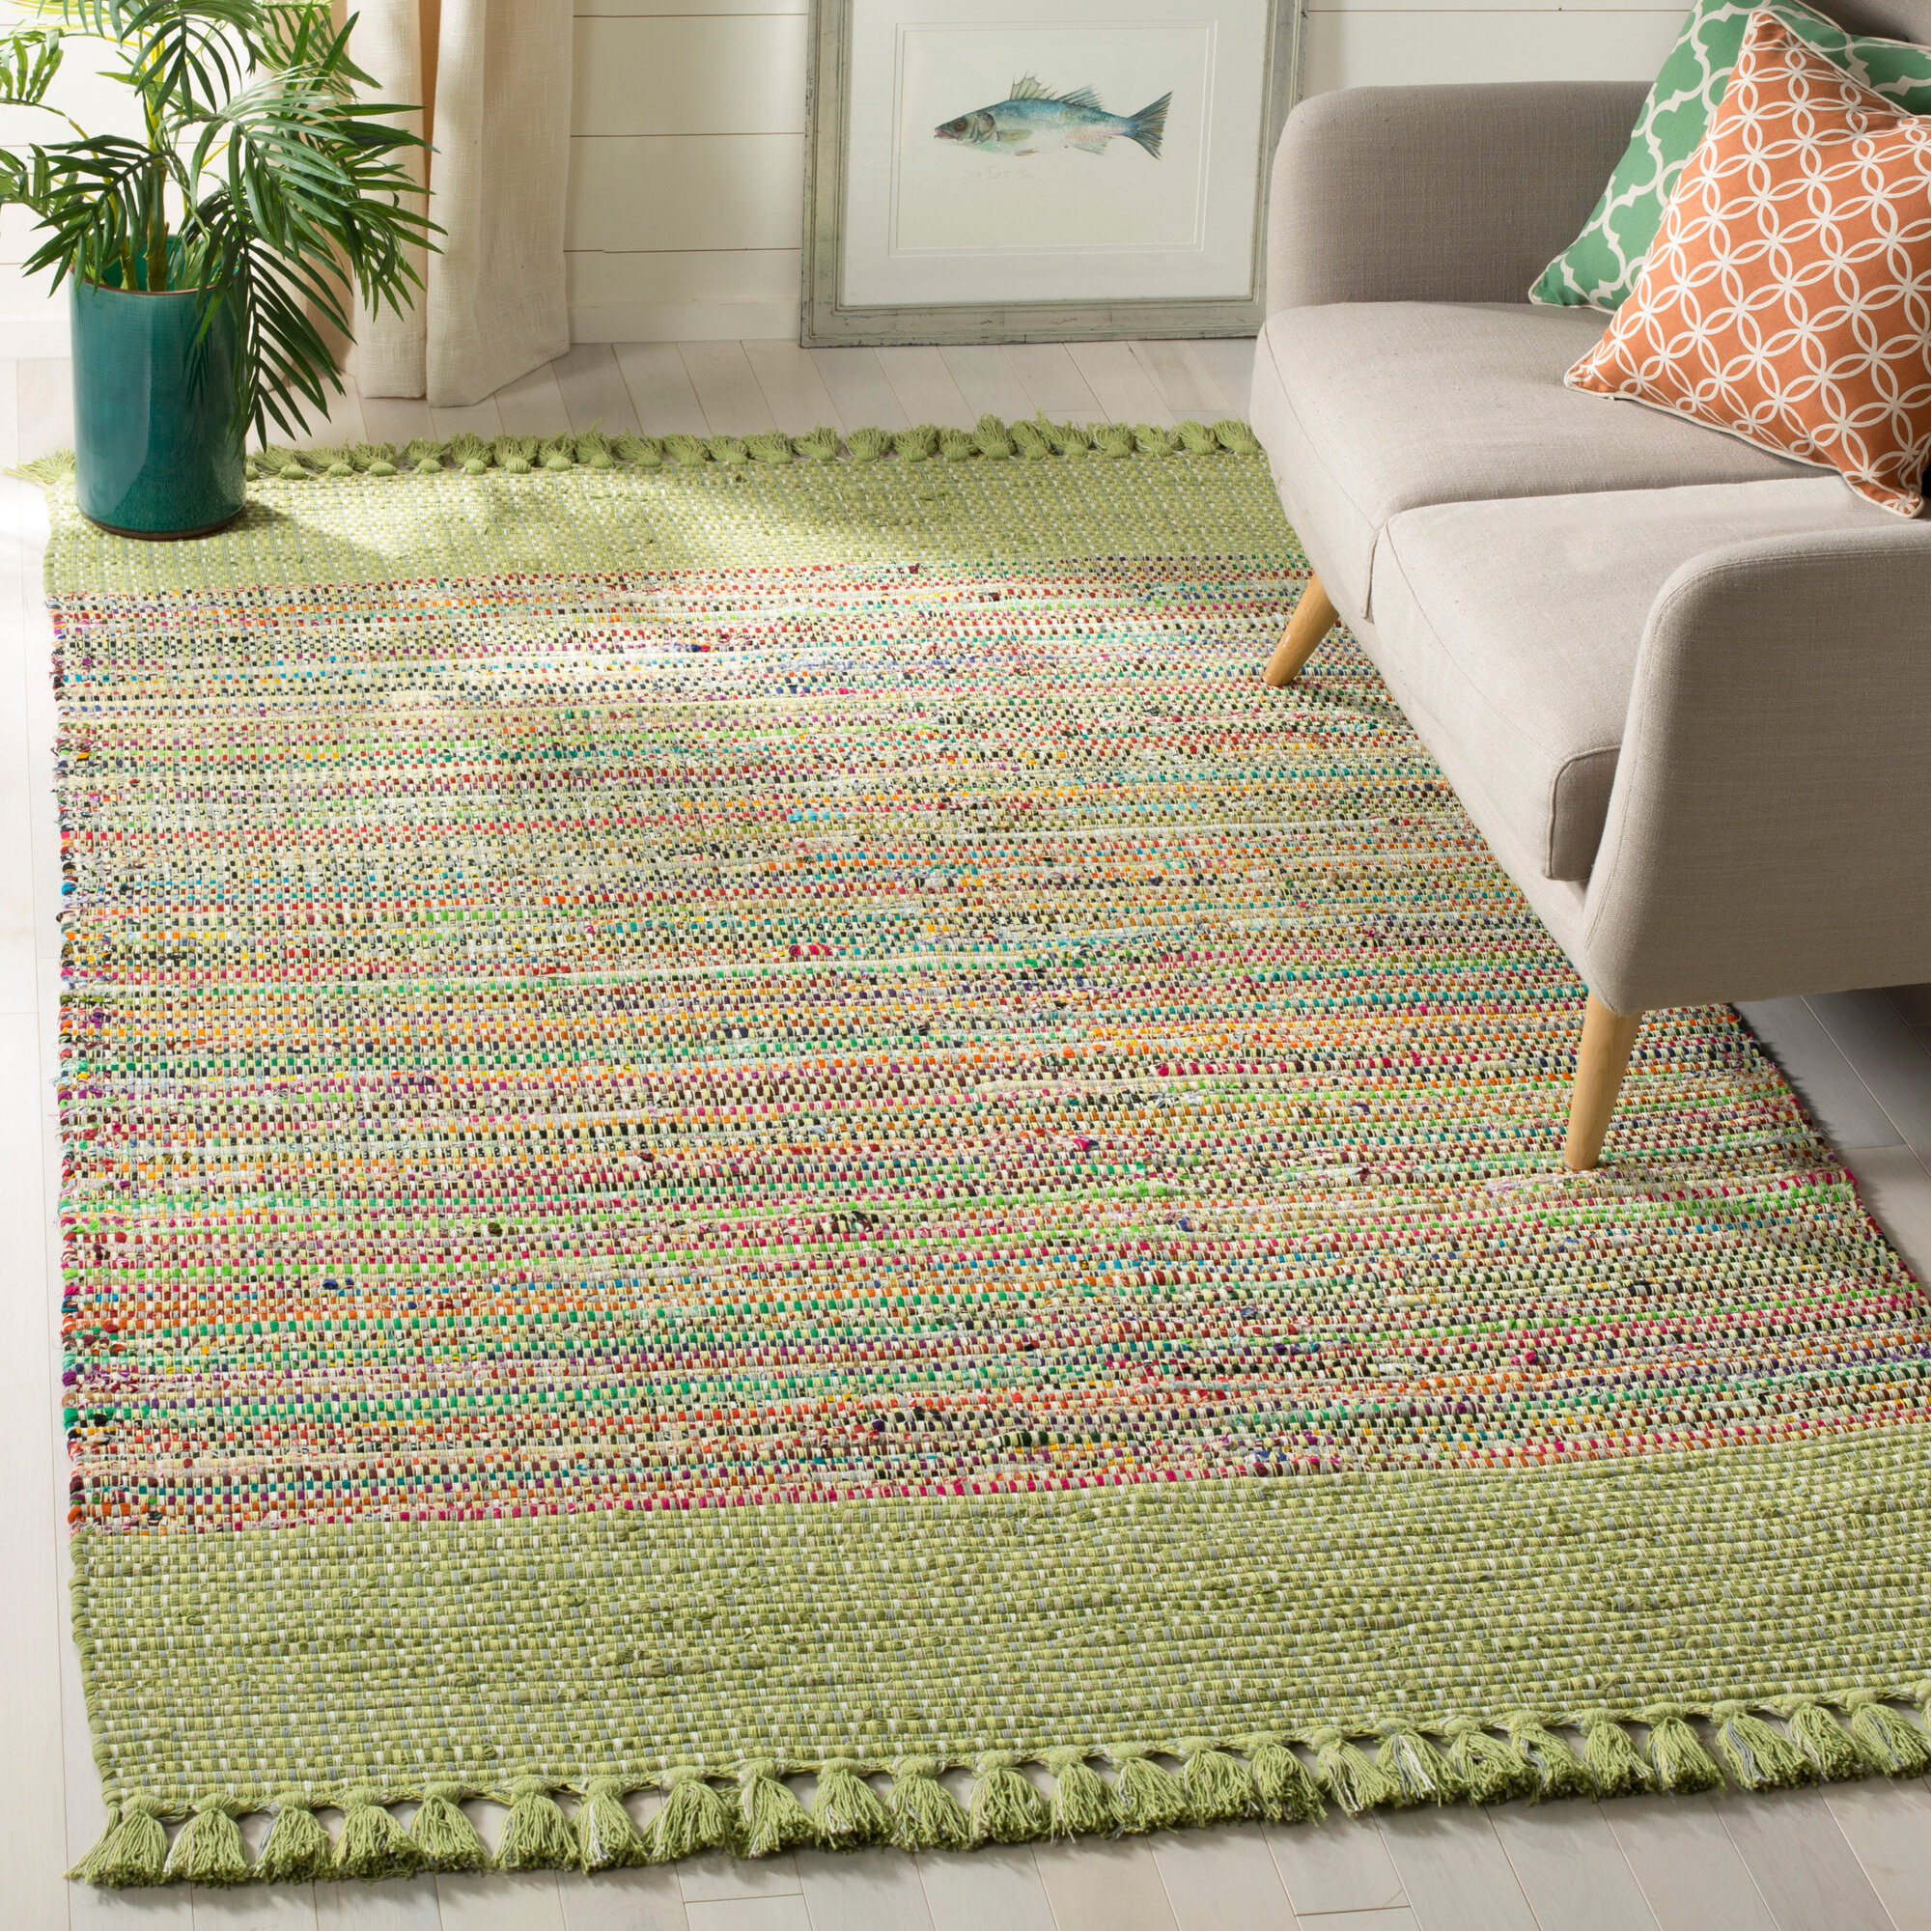 Mack Milo Apolaya Abstract Hand Knotted Cotton Green Gray Blue Area Rug Reviews Wayfair